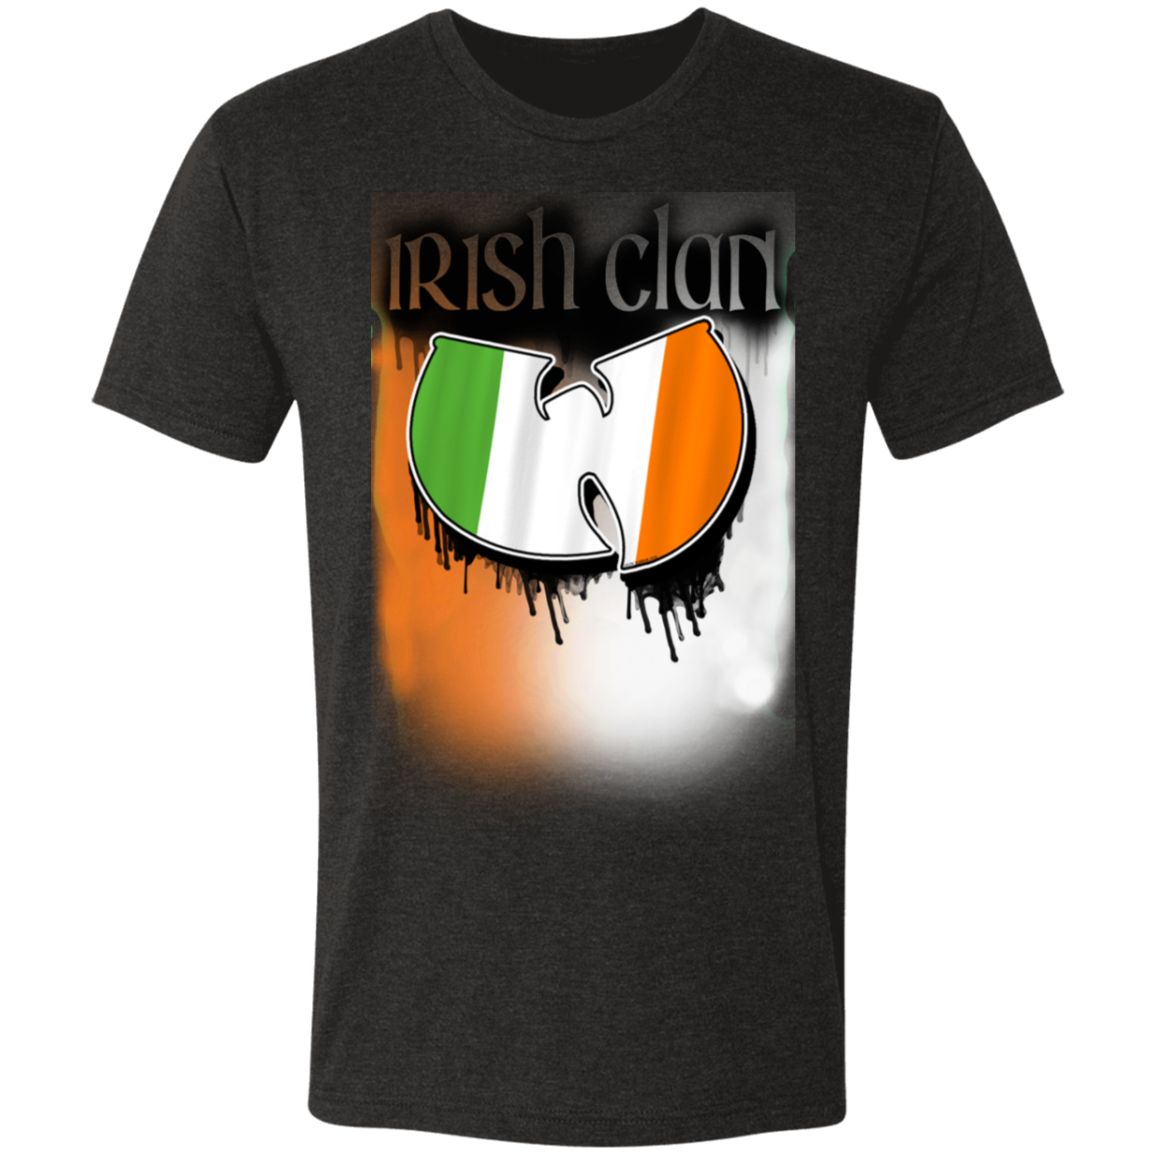 Irish Clan - Celtic Warrior Men's Tee